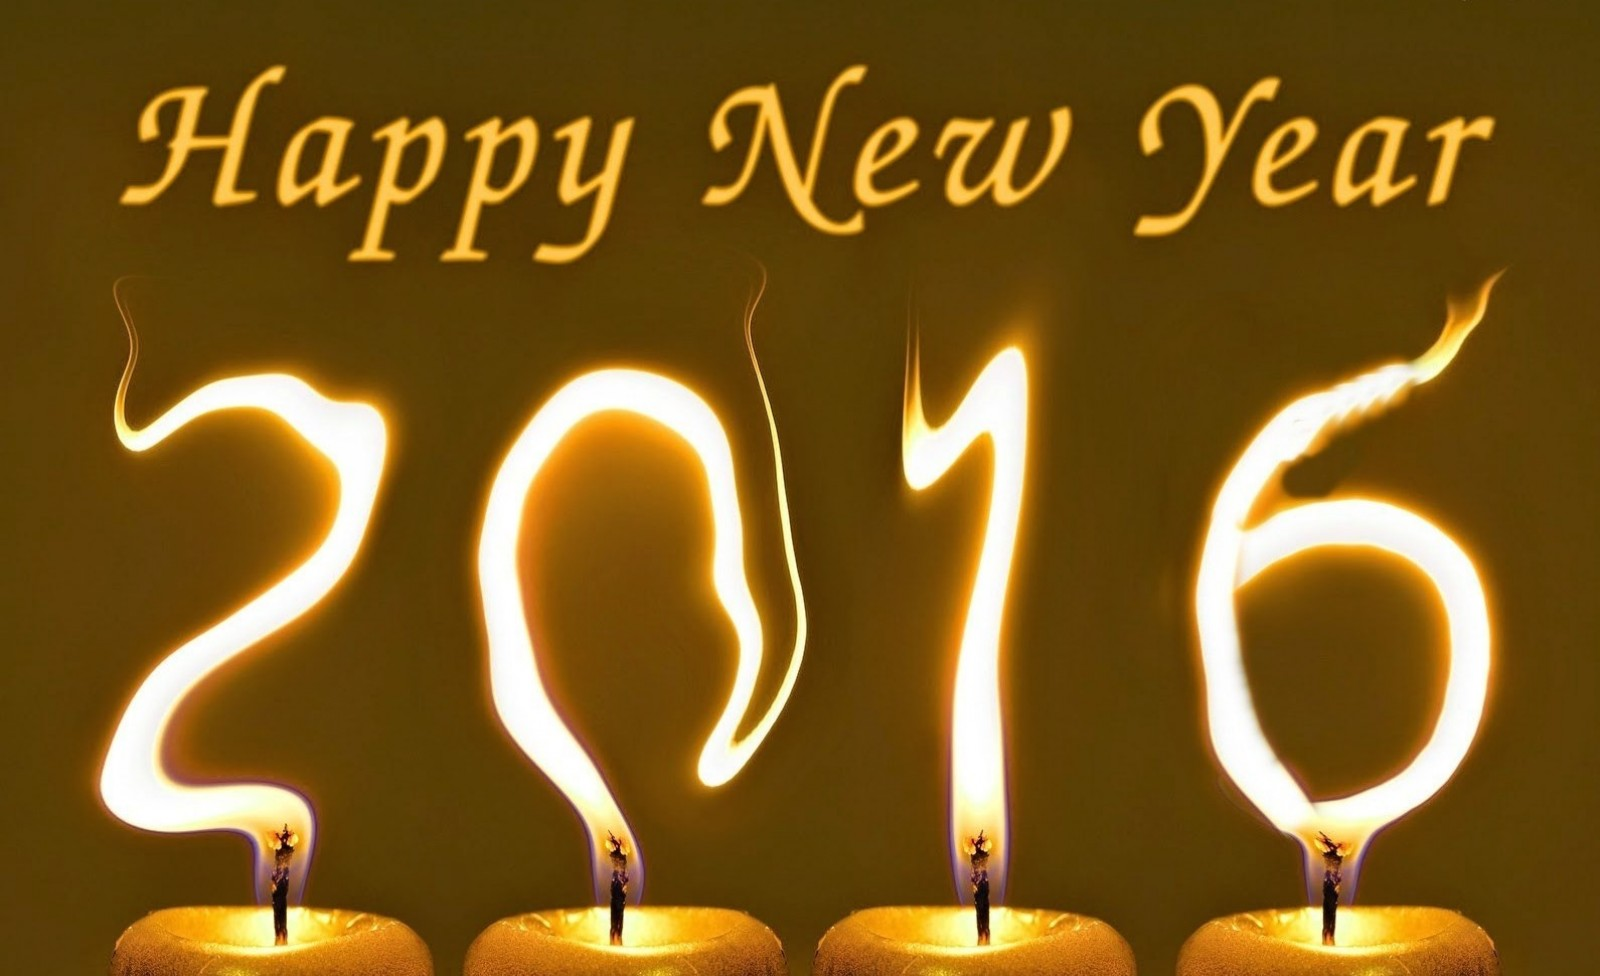 Happy-New-Year-2016-Burning-Candles_144414841776